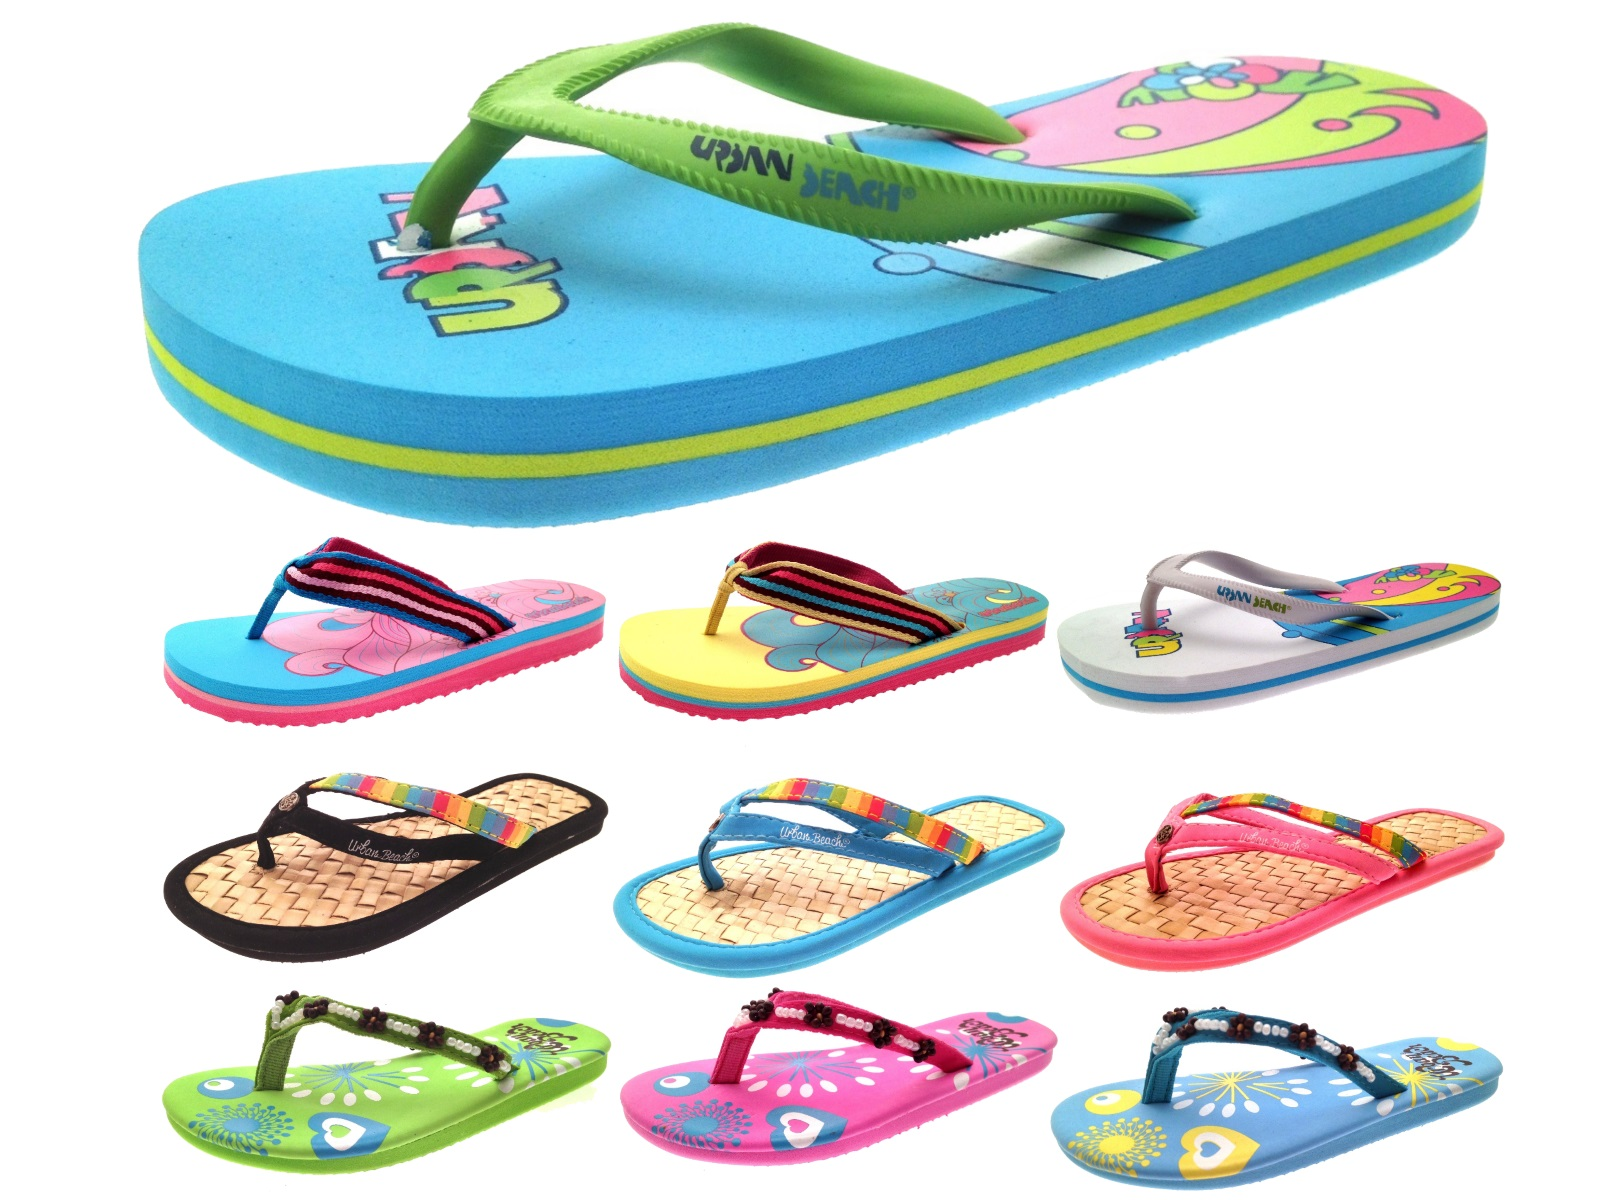 99a1a621f Womens Girls Urban Beach Sandals Flip Flops Toe Posts Kids Toe Post ...